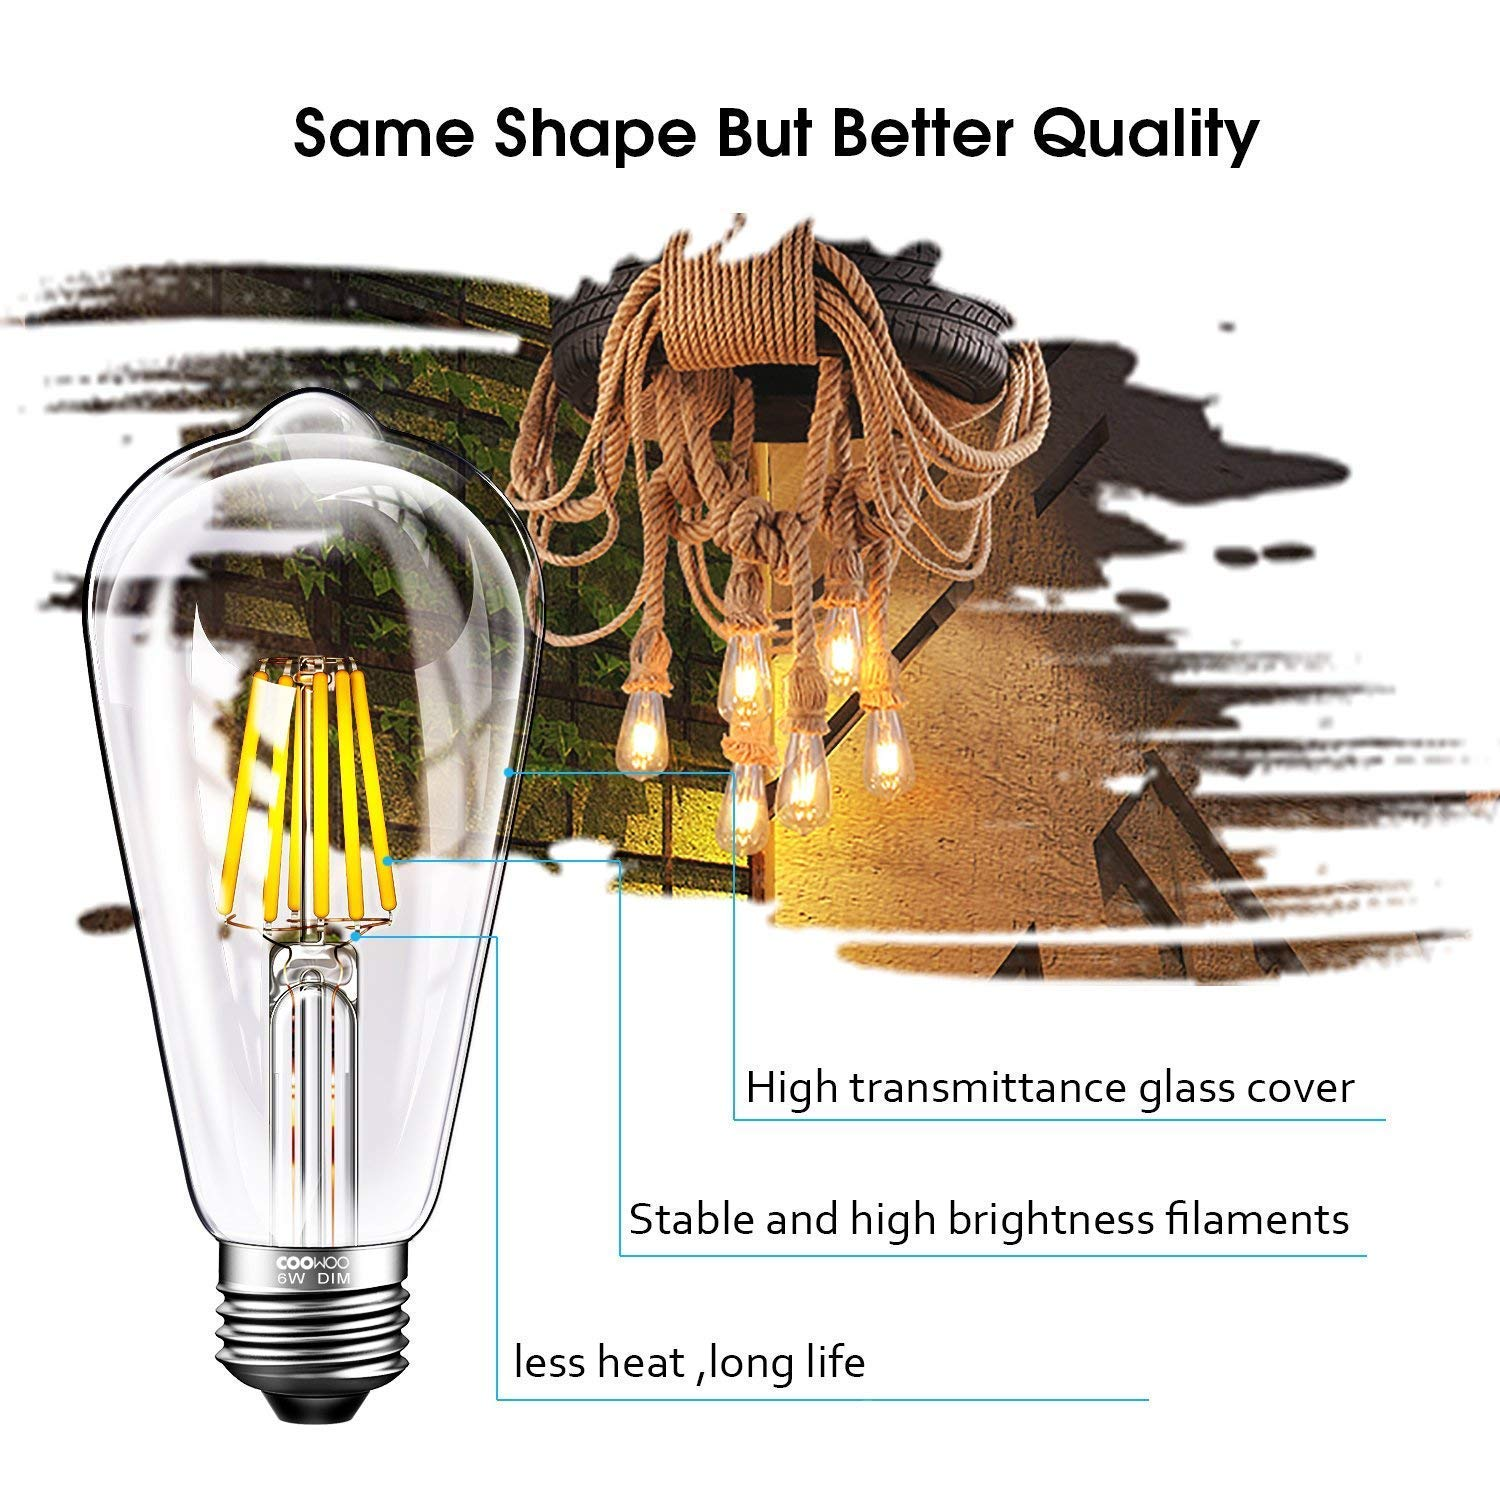 COOWOO LED Edison Light Bulbs 60W Equivalent Halogen Replacement Dimmable E26 Base Vintage Filament Pendant Light Bulbs 2700K Warm White 6W UL-Listed Commercial Island Light Bulbs with 600lm 6 Packs